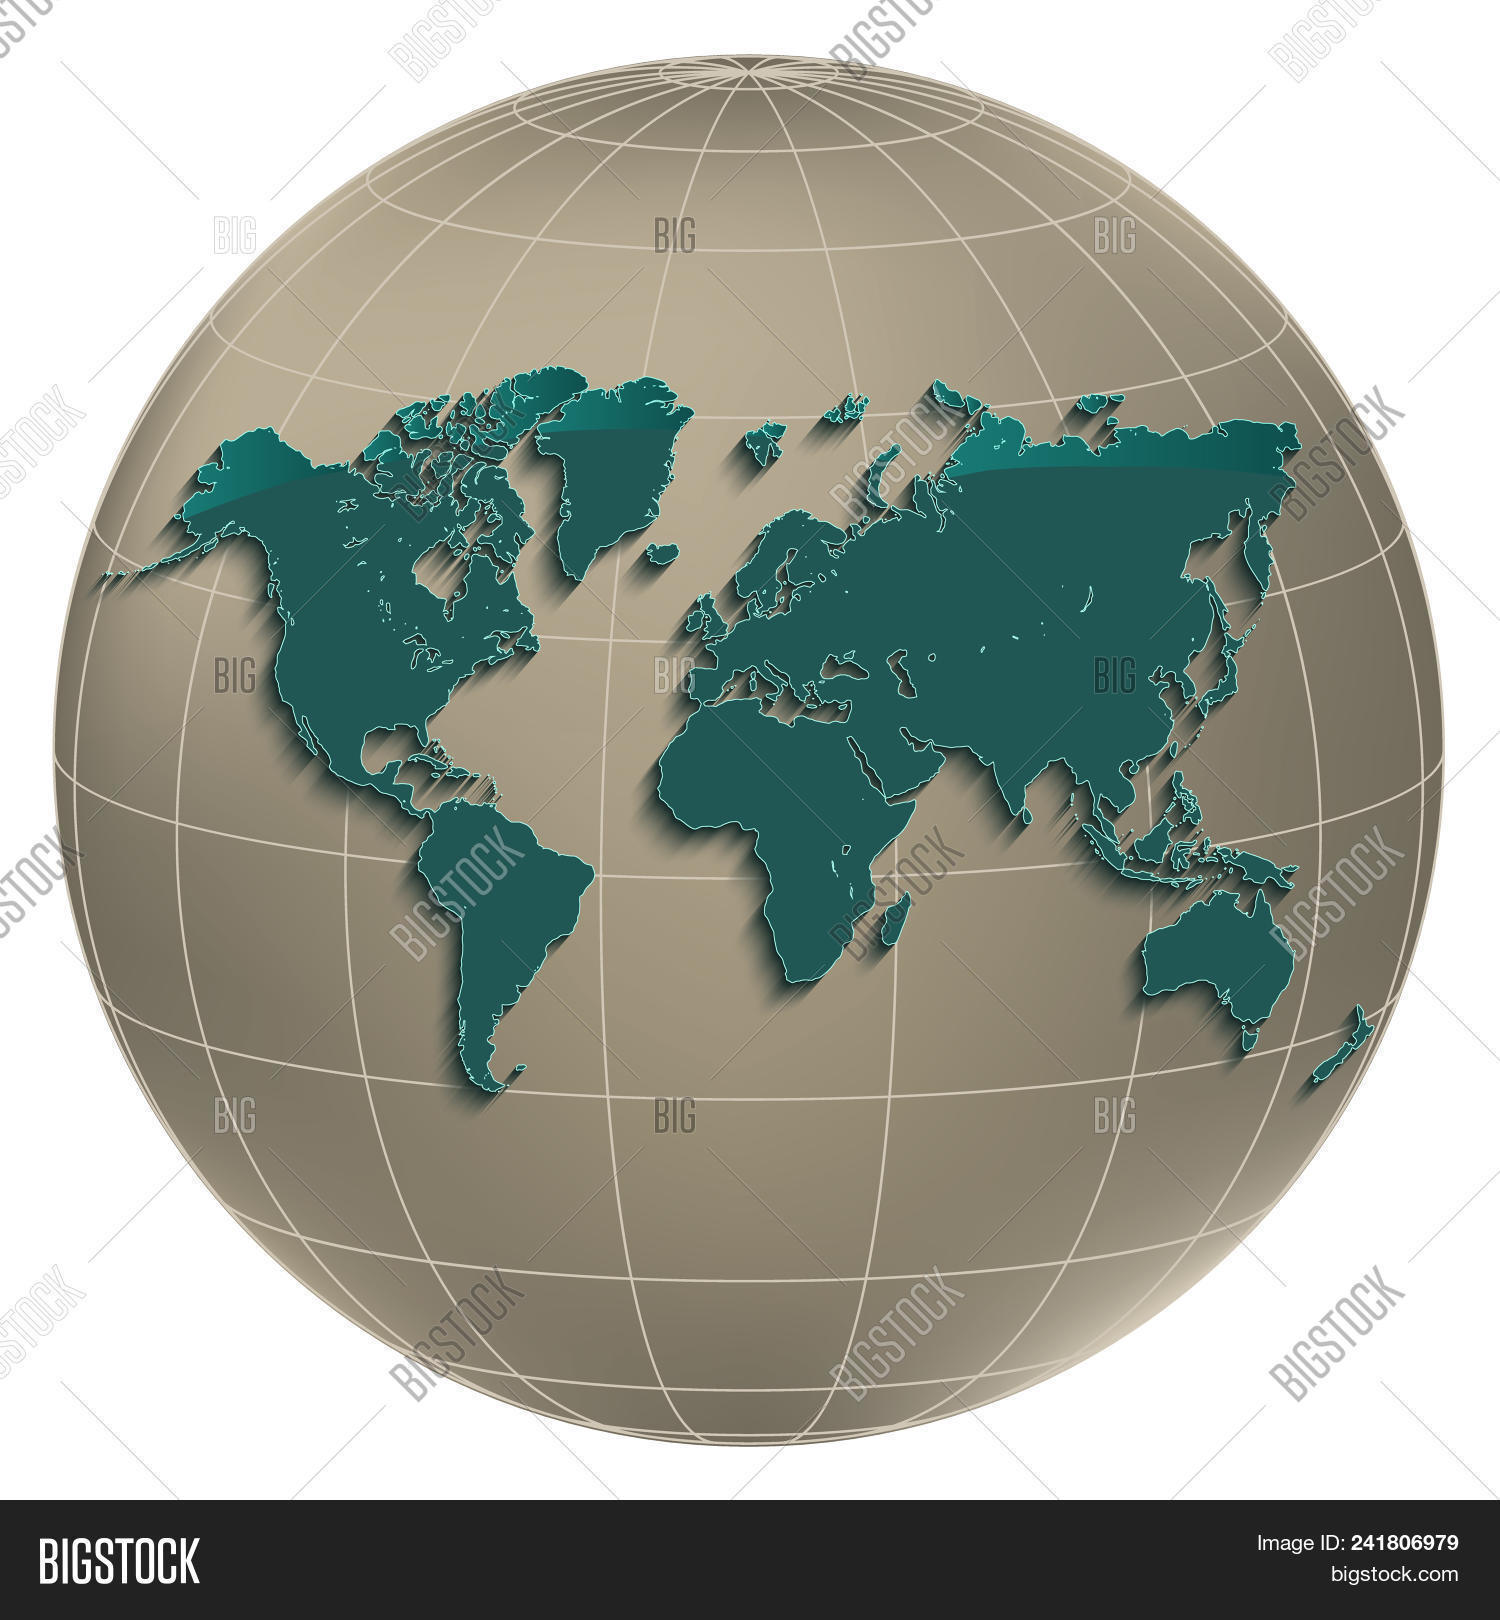 Geographic Map Of Earth.World Map Earth Globus Image Photo Free Trial Bigstock